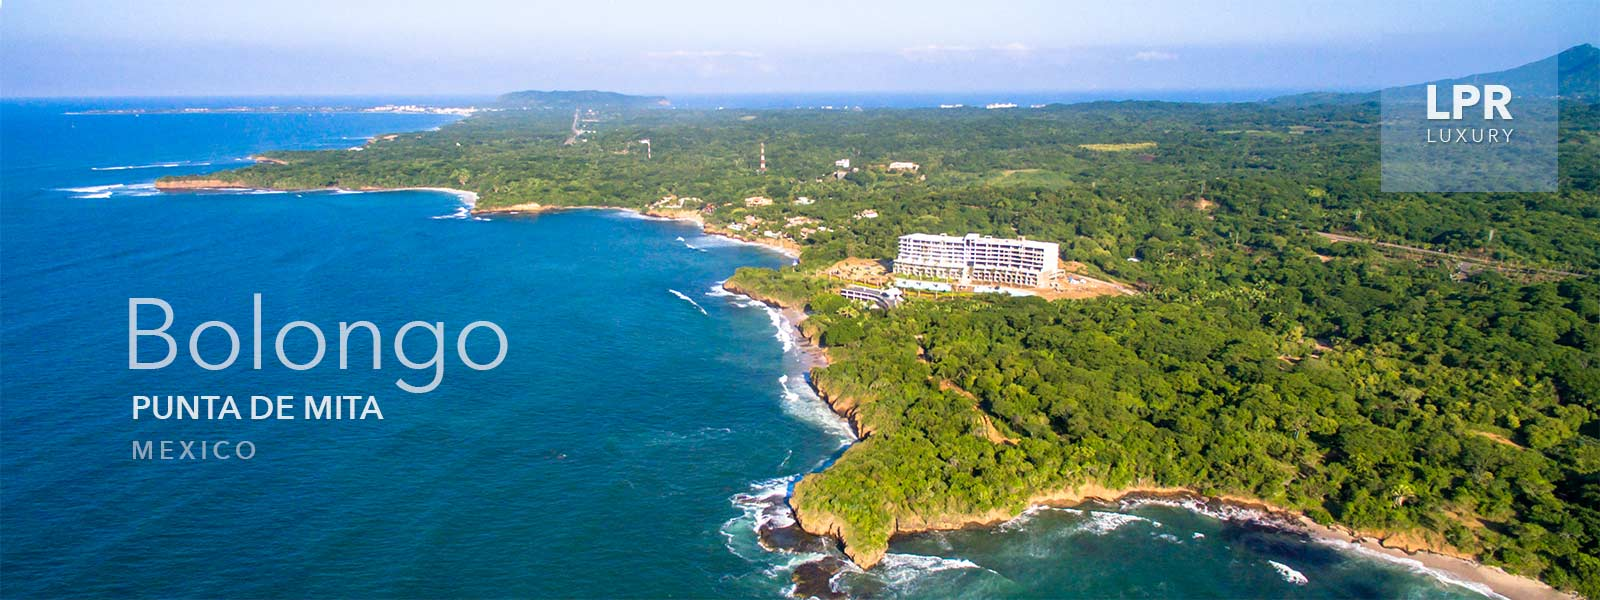 Bolongo - Luxury Real Estate - Punta de Mita, Mexico